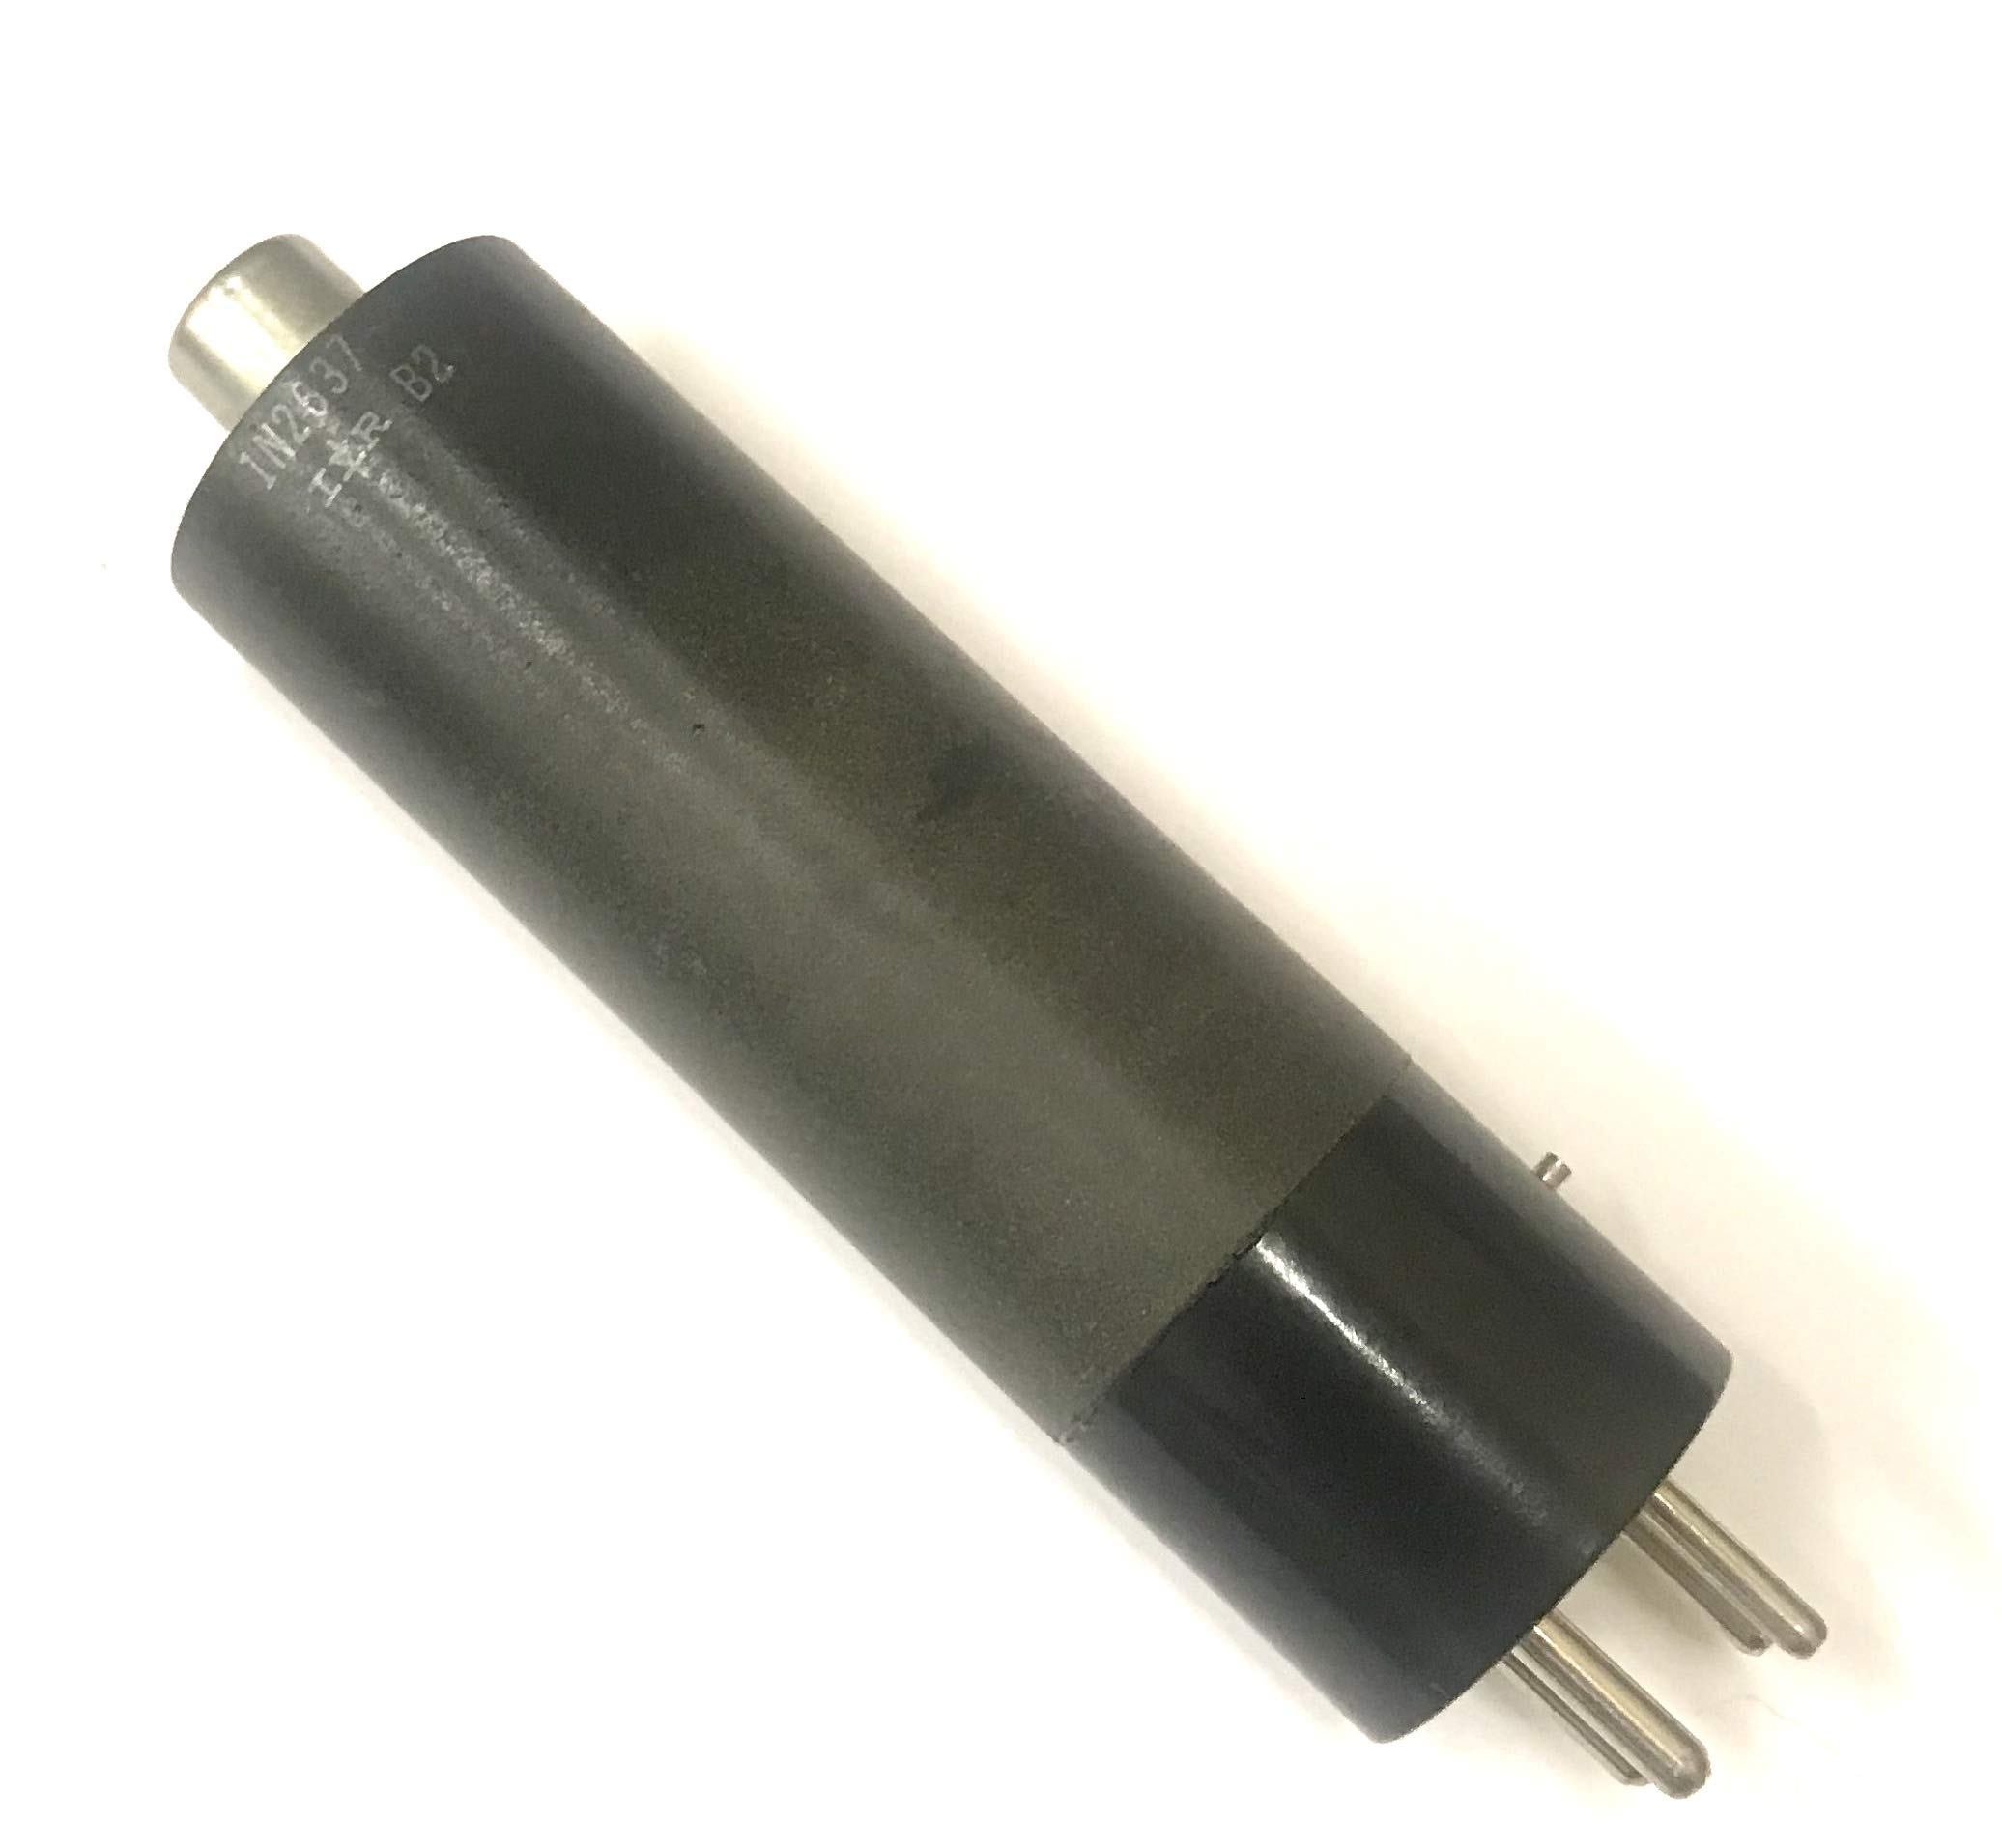 1N2637 High Voltage Rectifier Replacement for 3B28, 866A Vacuum Tubes